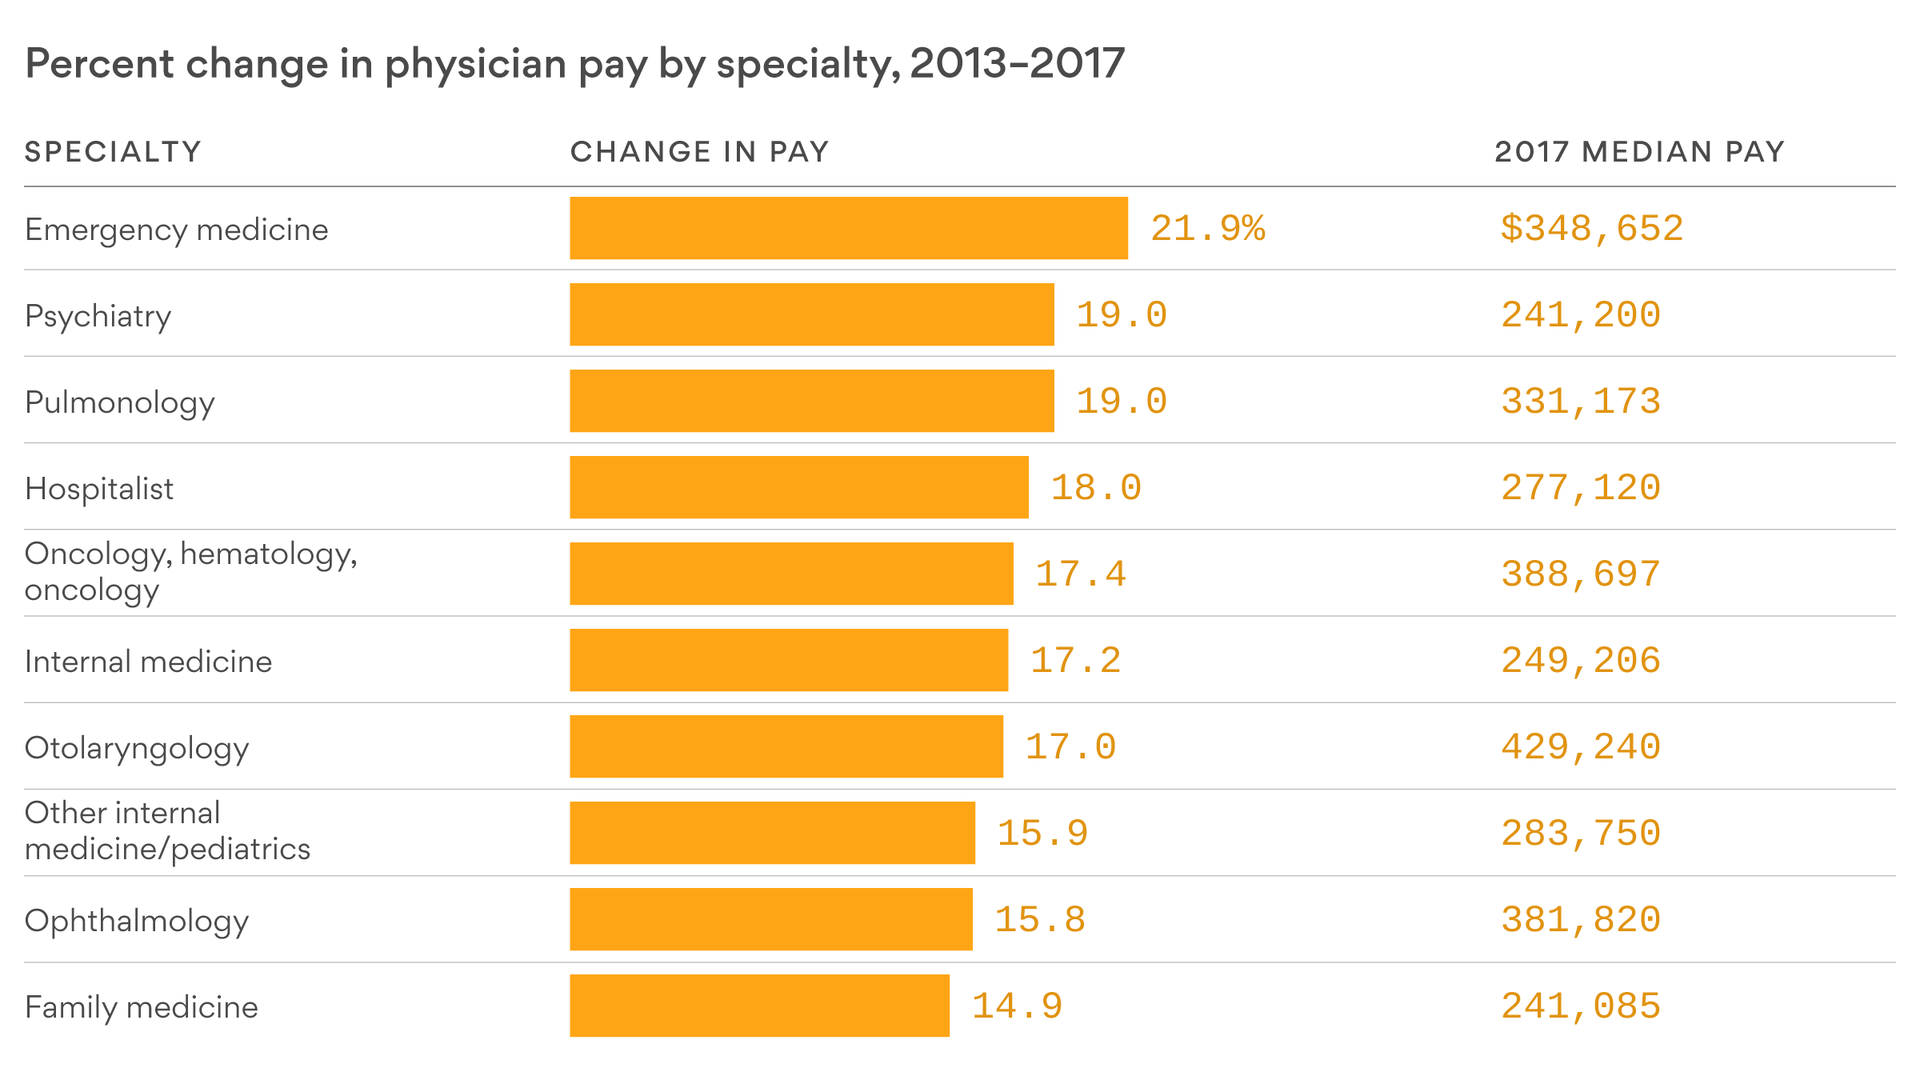 The doctor specialties with the highest pay raises